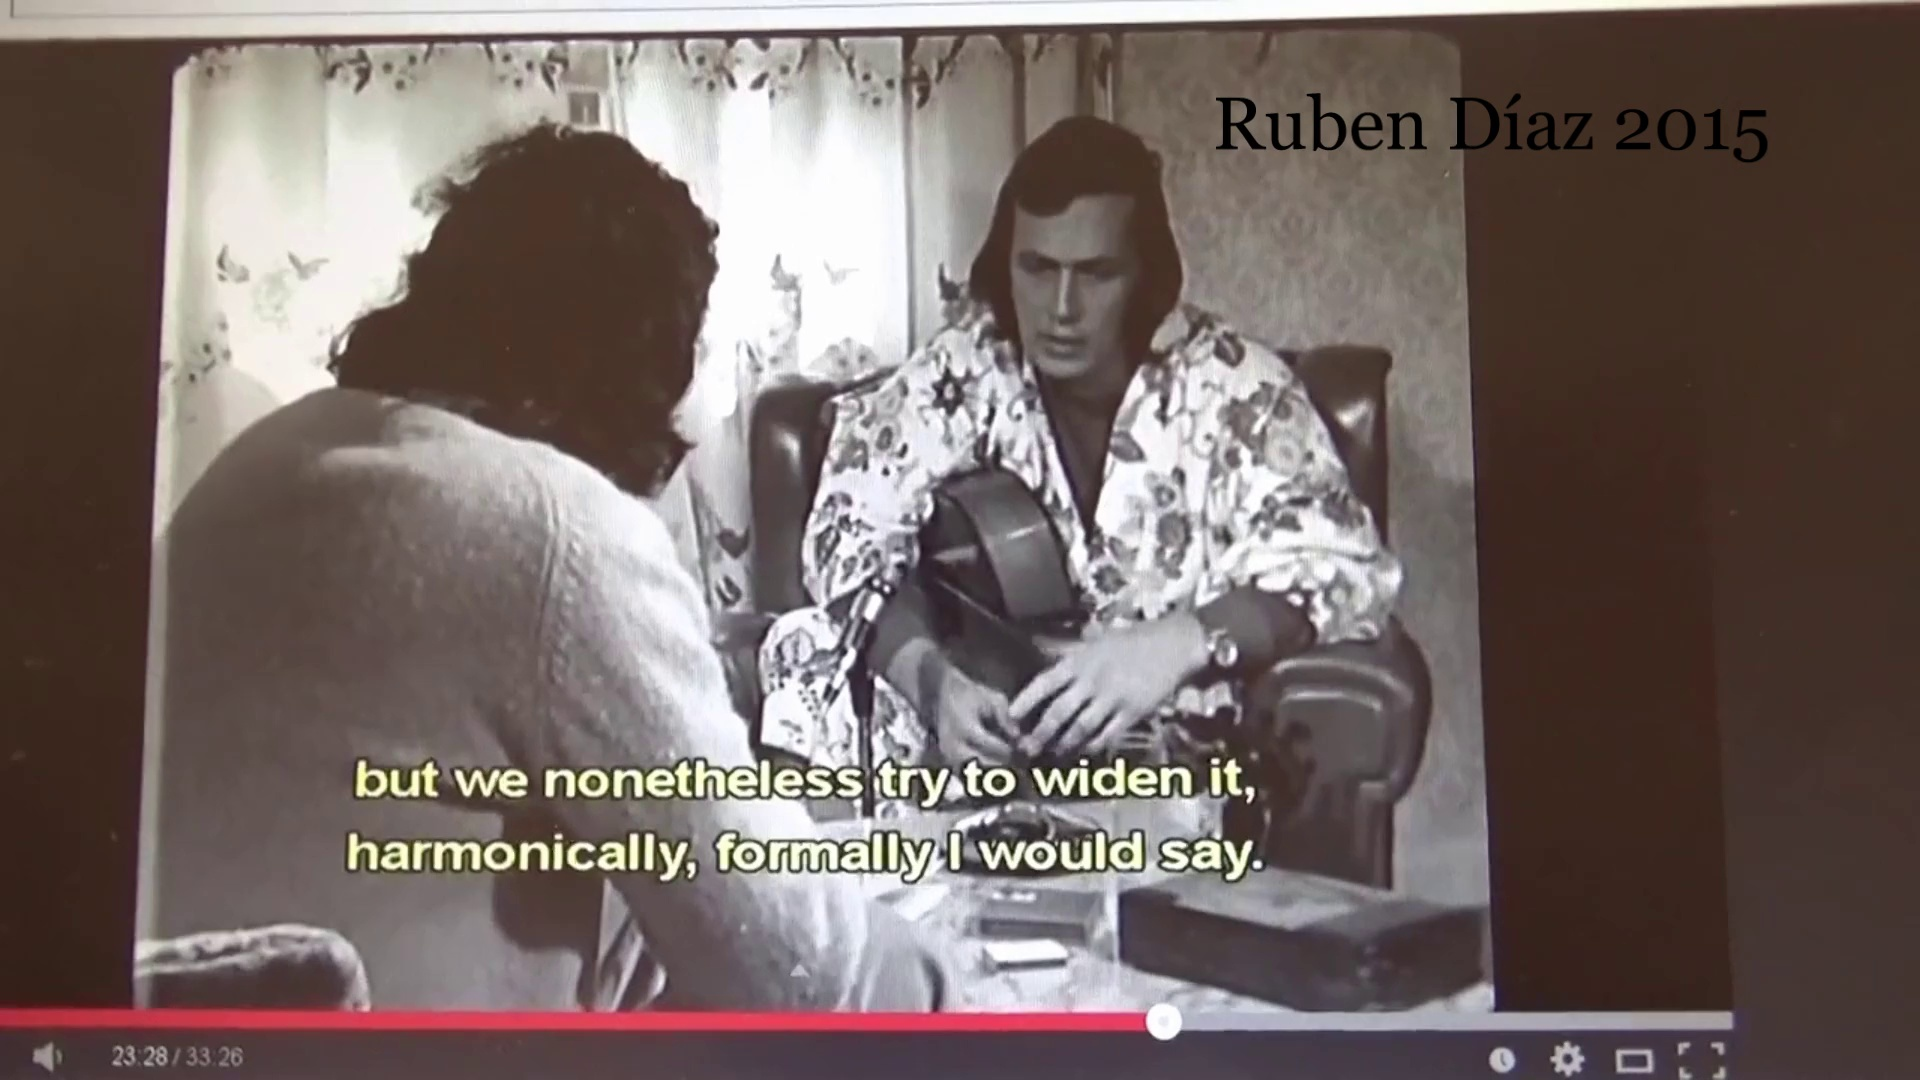 Paco advocate improvisation as THE path to be followed in new flamenco (Homage to Paco de Lucia 2) Ruben Diaz / Definition and Re-definition of Modern Flamenco / Definicion de Flamenco